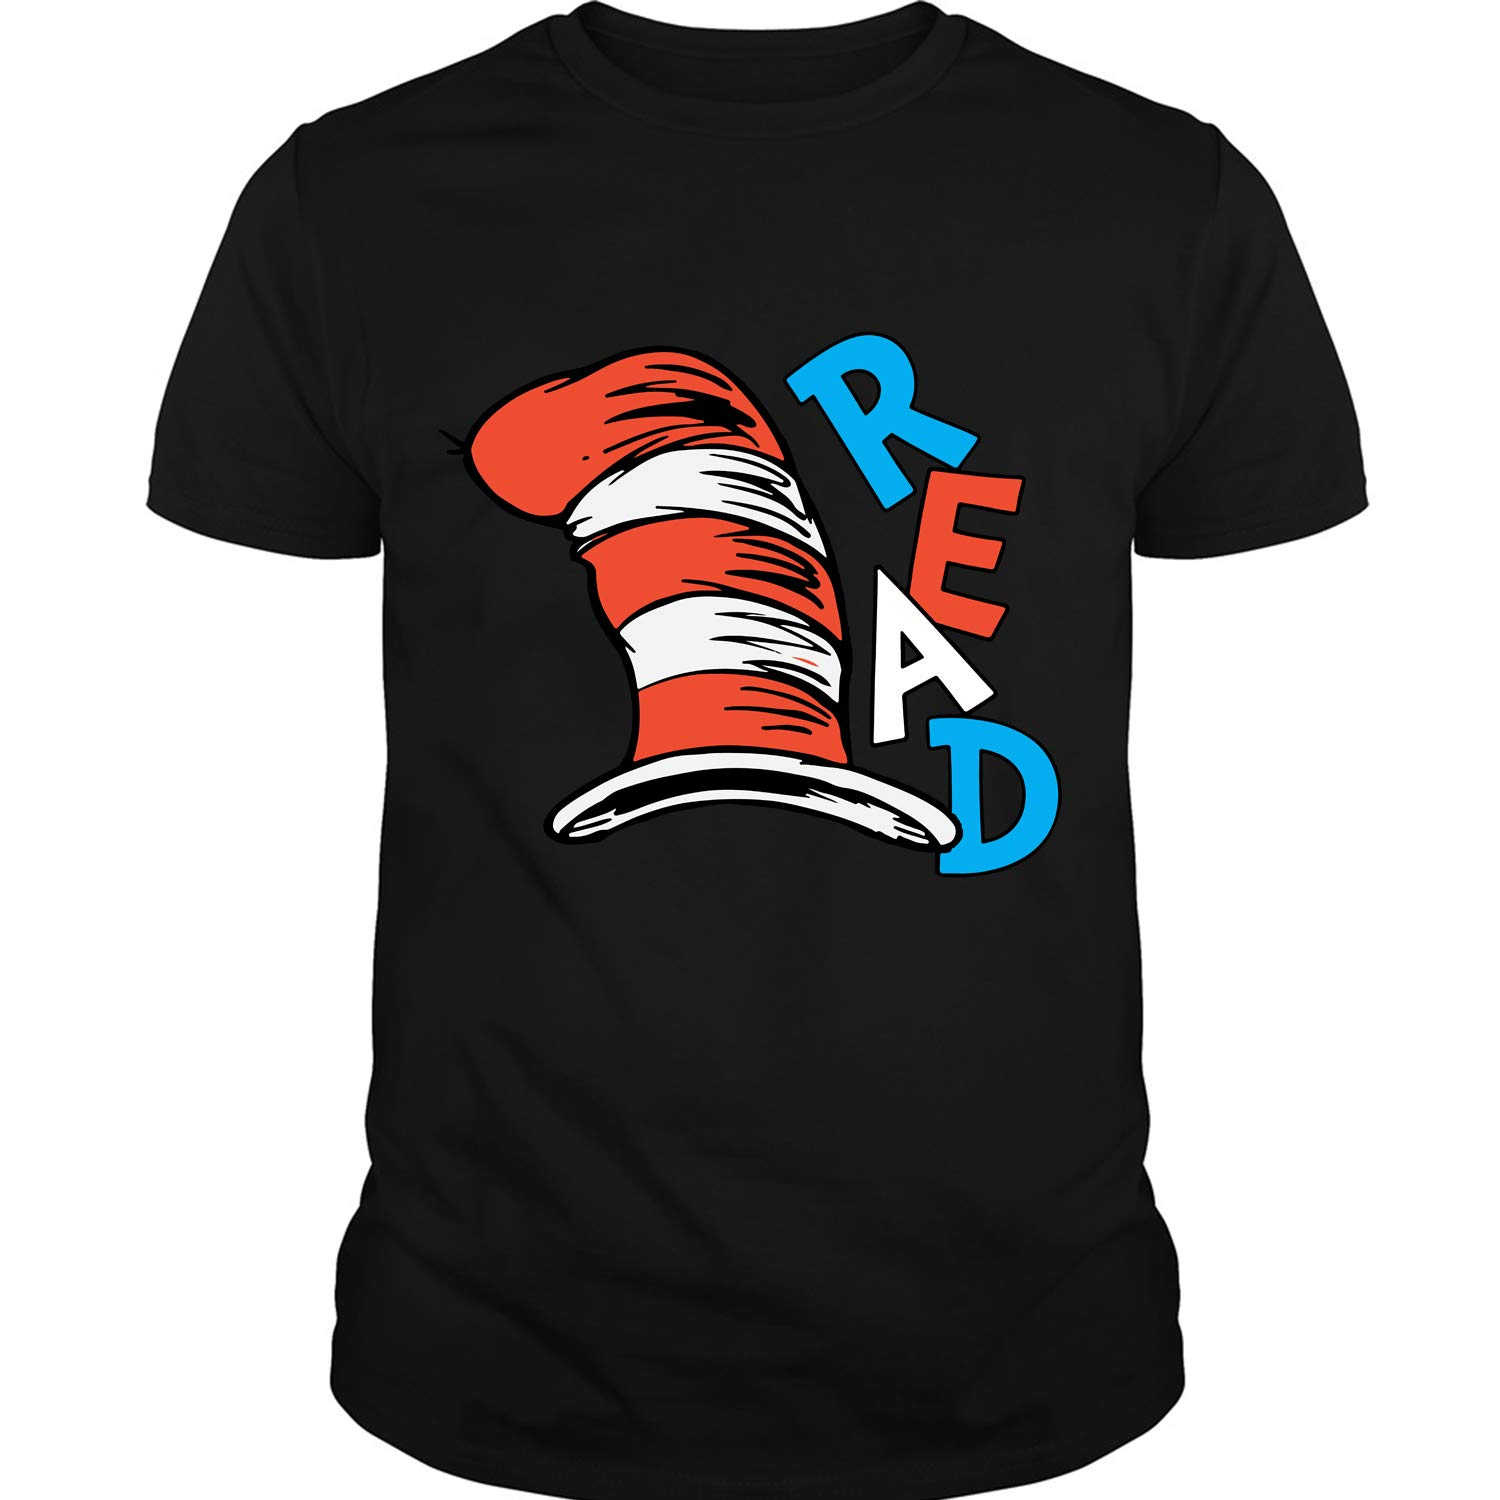 The Cat In The Hat T Shirt Dr Seuss T Shirt 1356